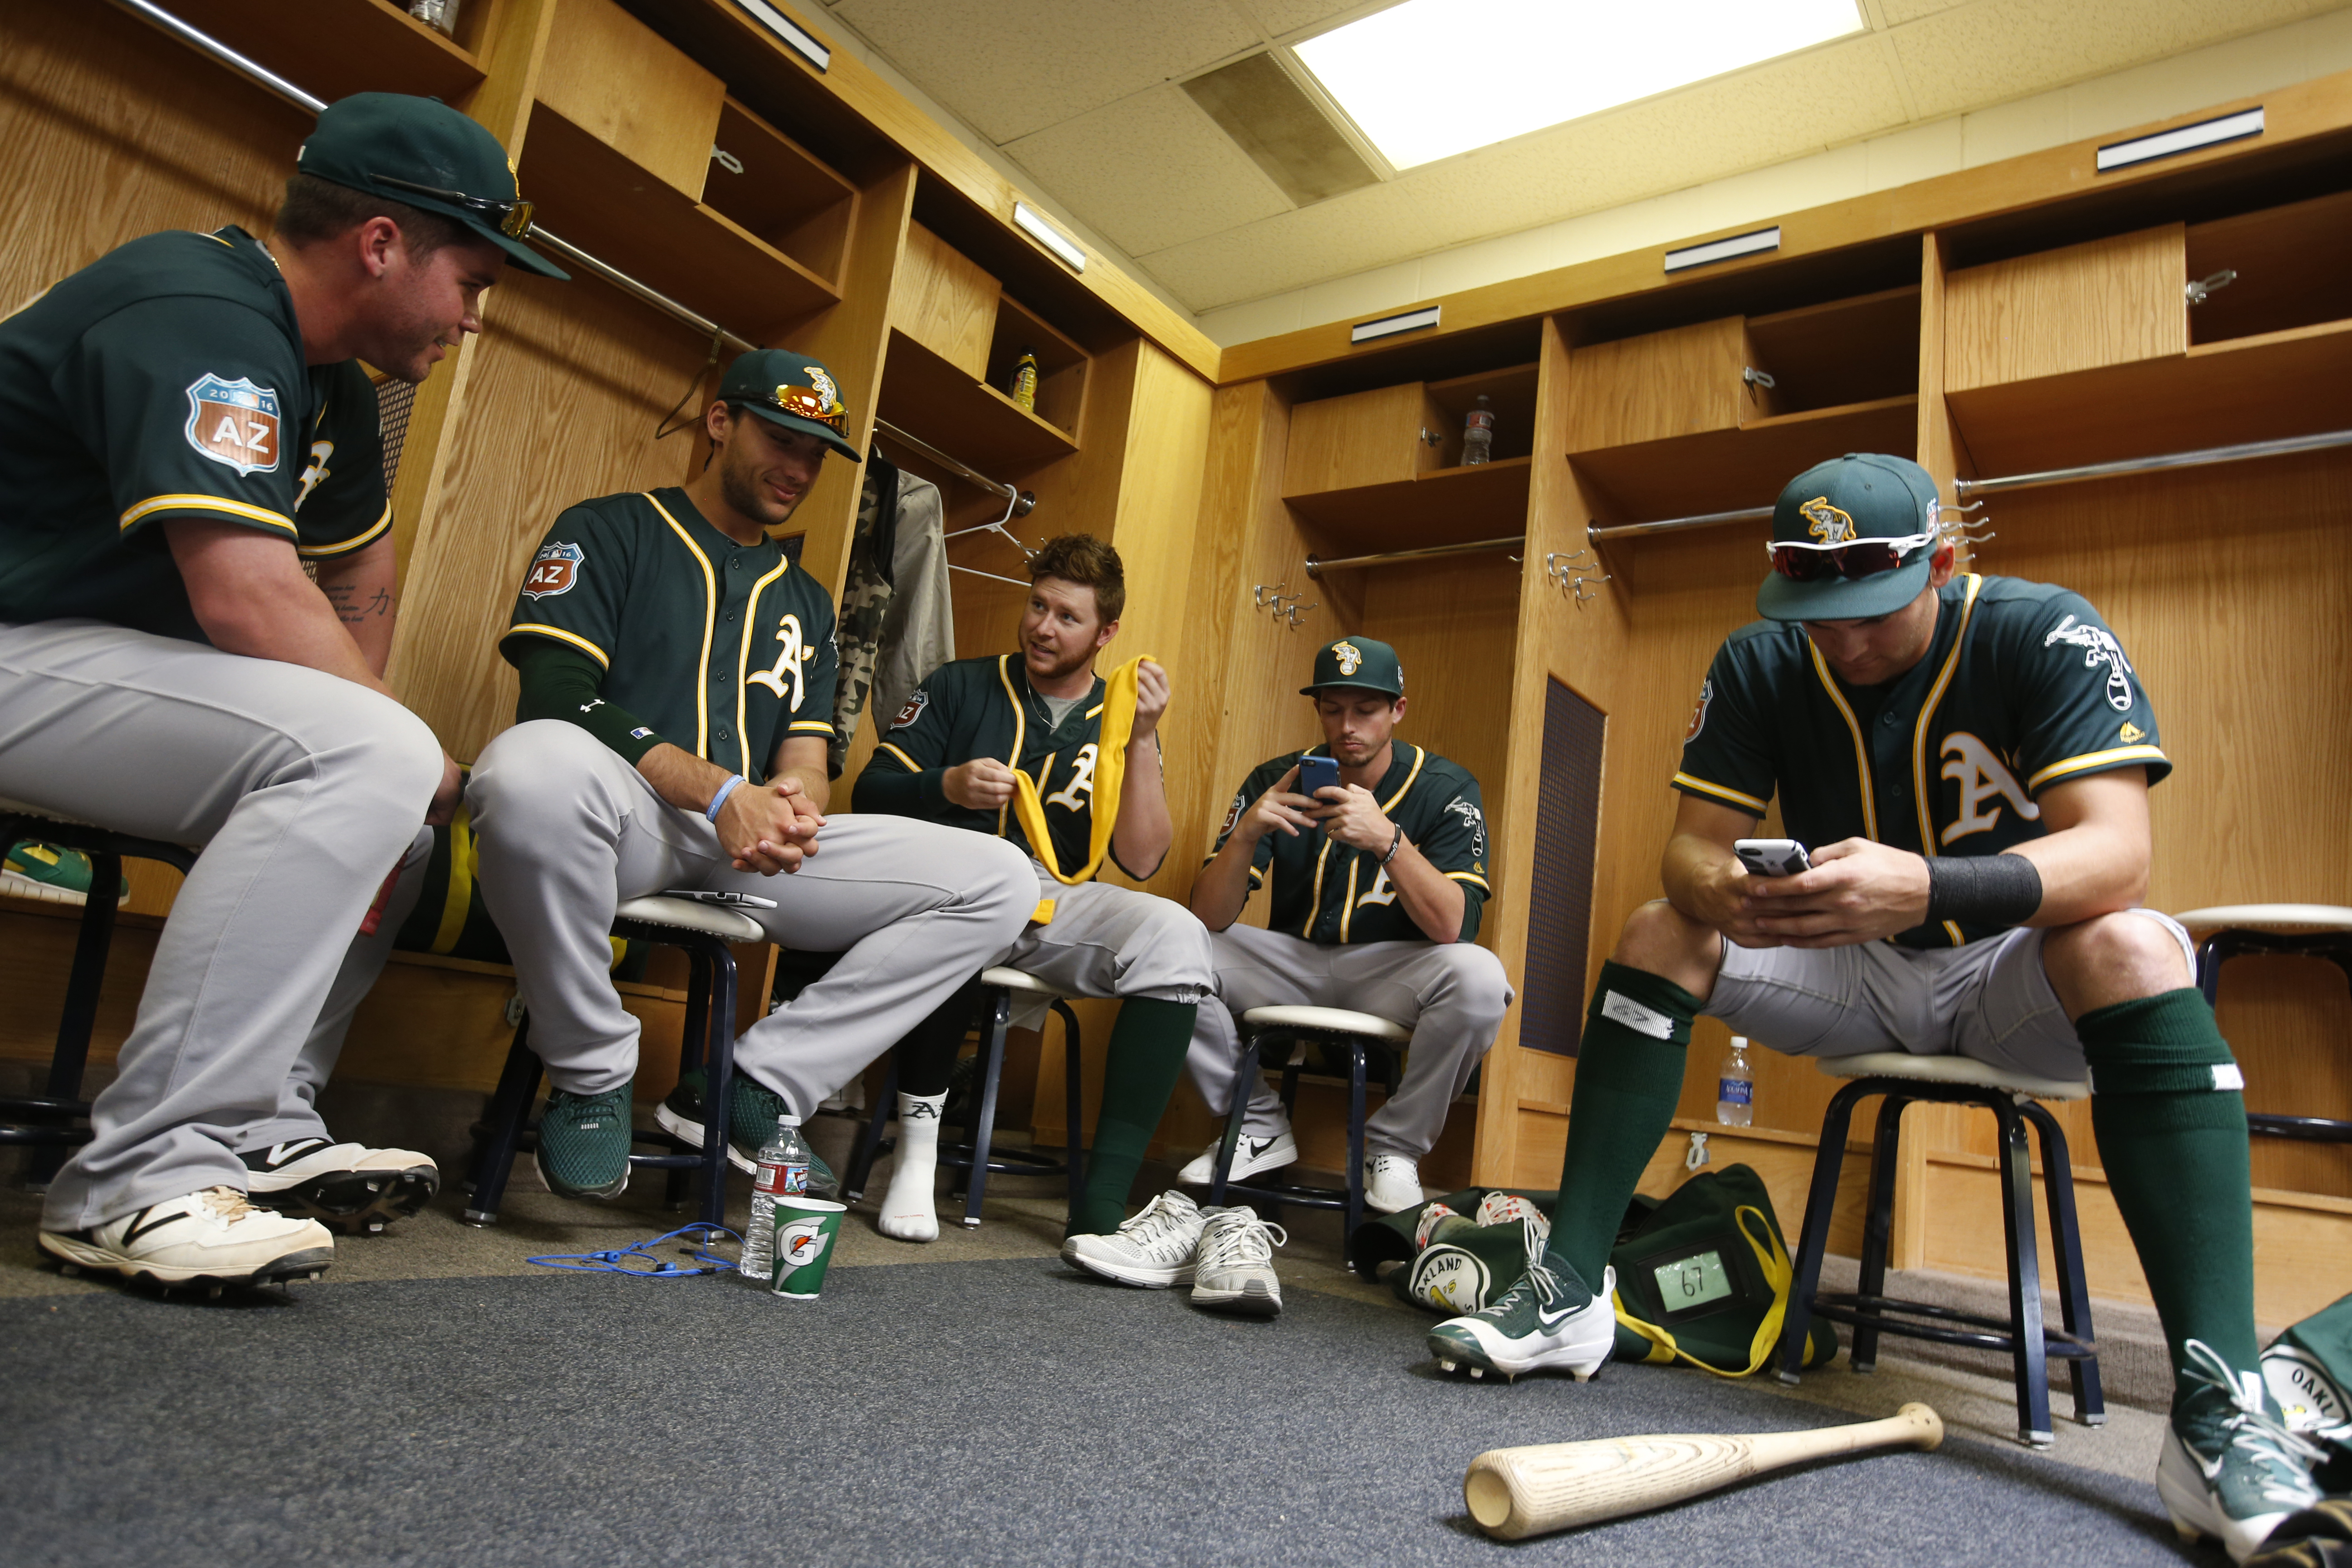 Case Study on Billy Beane: Changing the Game